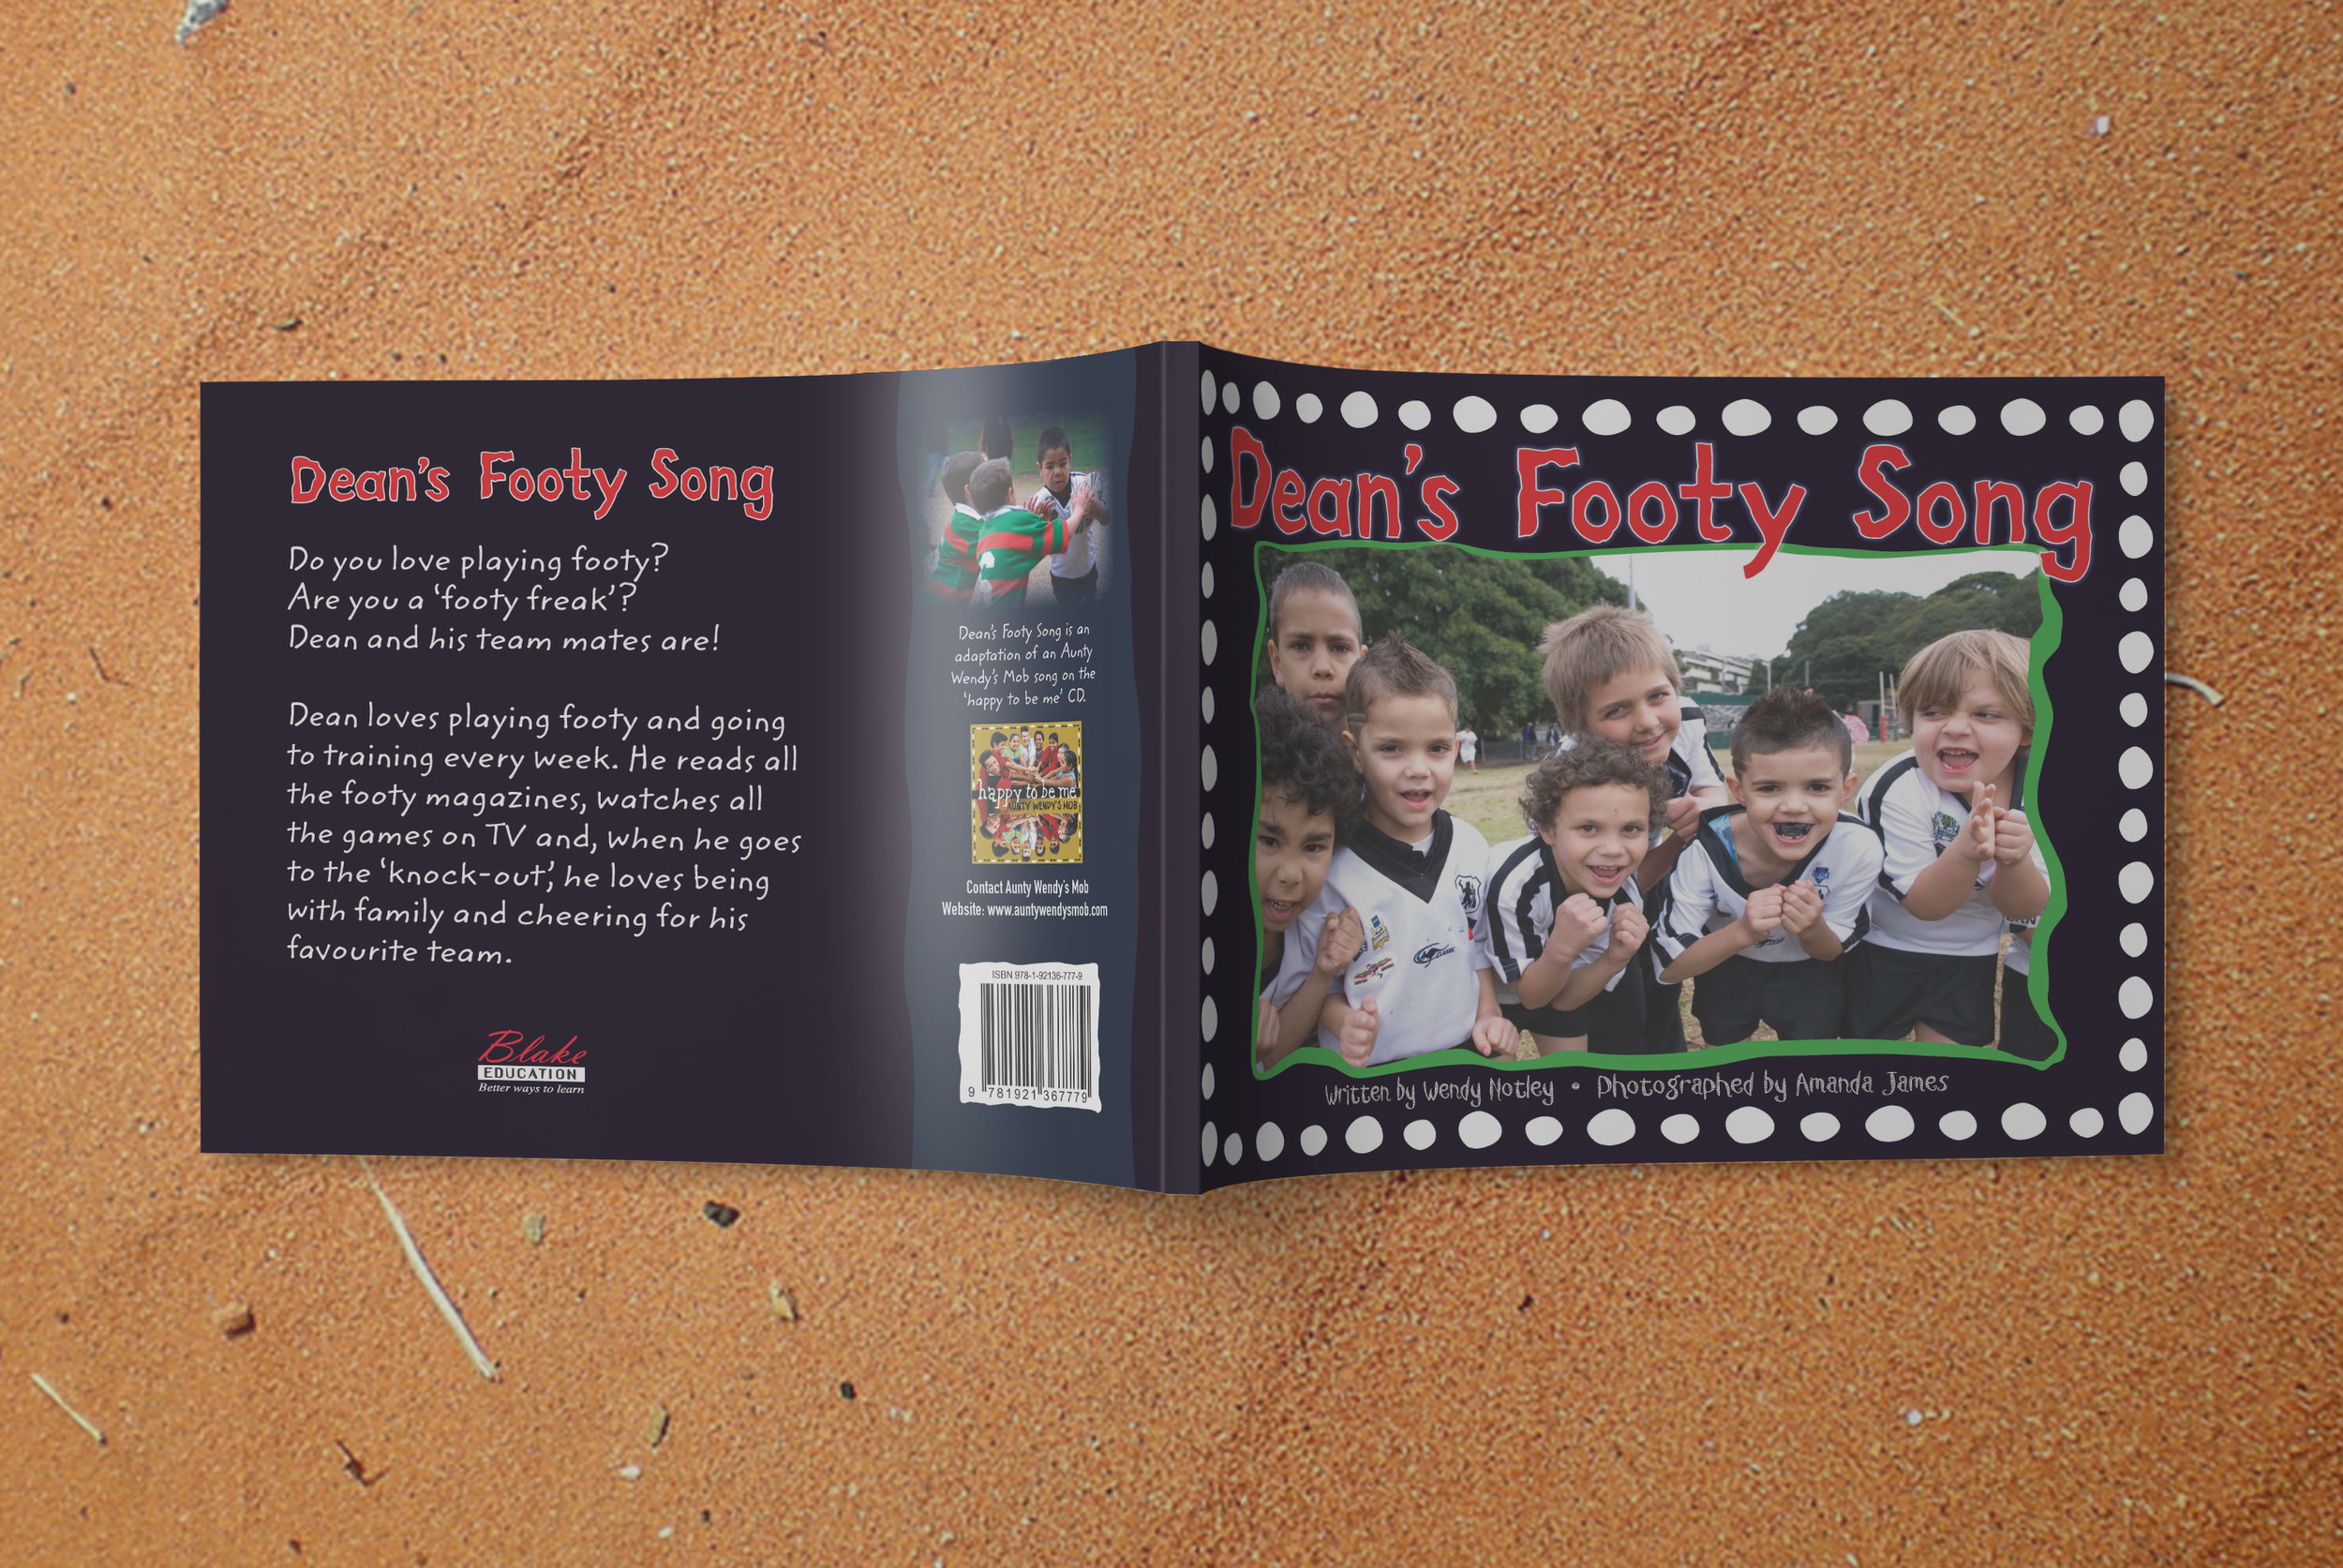 0016_Wendy Website_Shop_Picture Book Sample Image_Dean's Footy Song.jpg